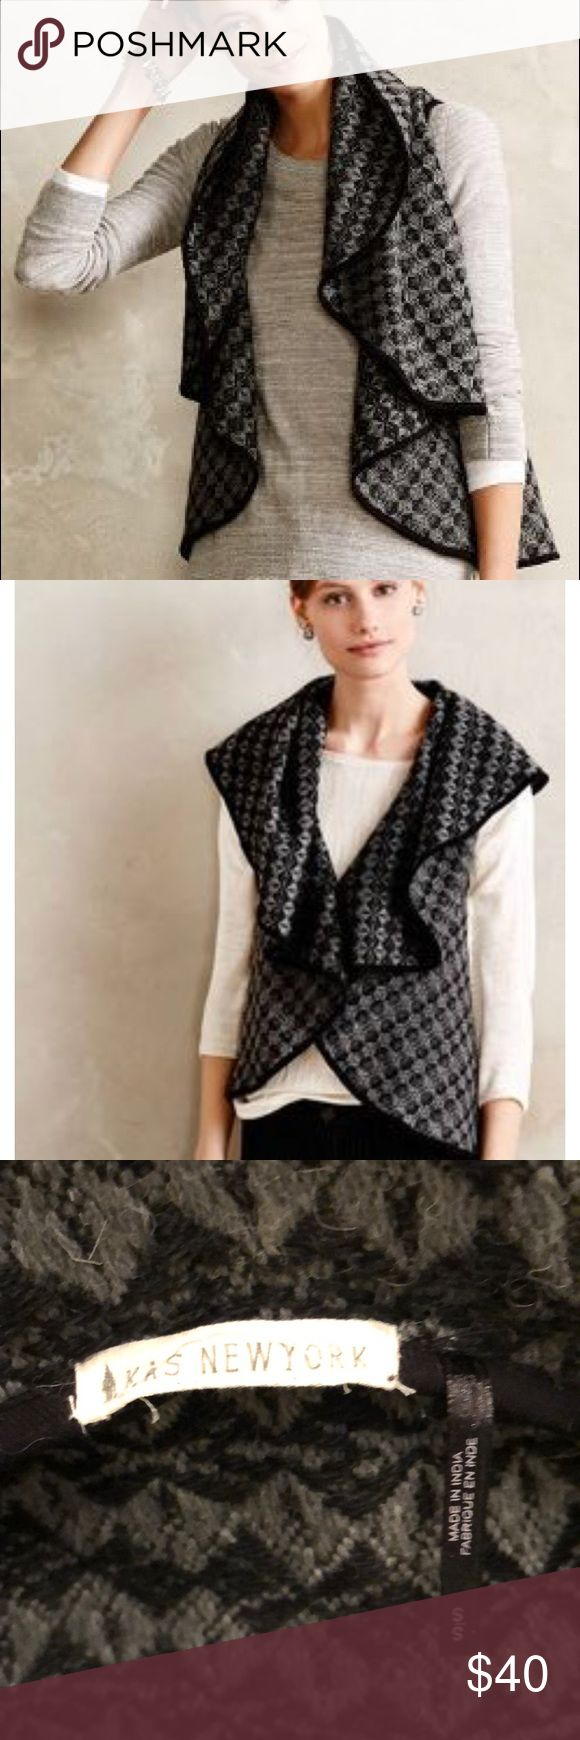 Anthropologie Grey/Black Draped Vest Worn one time, size small! From Anthropologie, a vest by KAS New York. Black and grey weave, draped style. Sleeveless with oversized collar. One snap button closure. Black piping. Cute to layer over long sleeve or sleeveless top. Wool blend (wool/poly/cotton). Wearable in all seasons! Anthropologie Sweaters